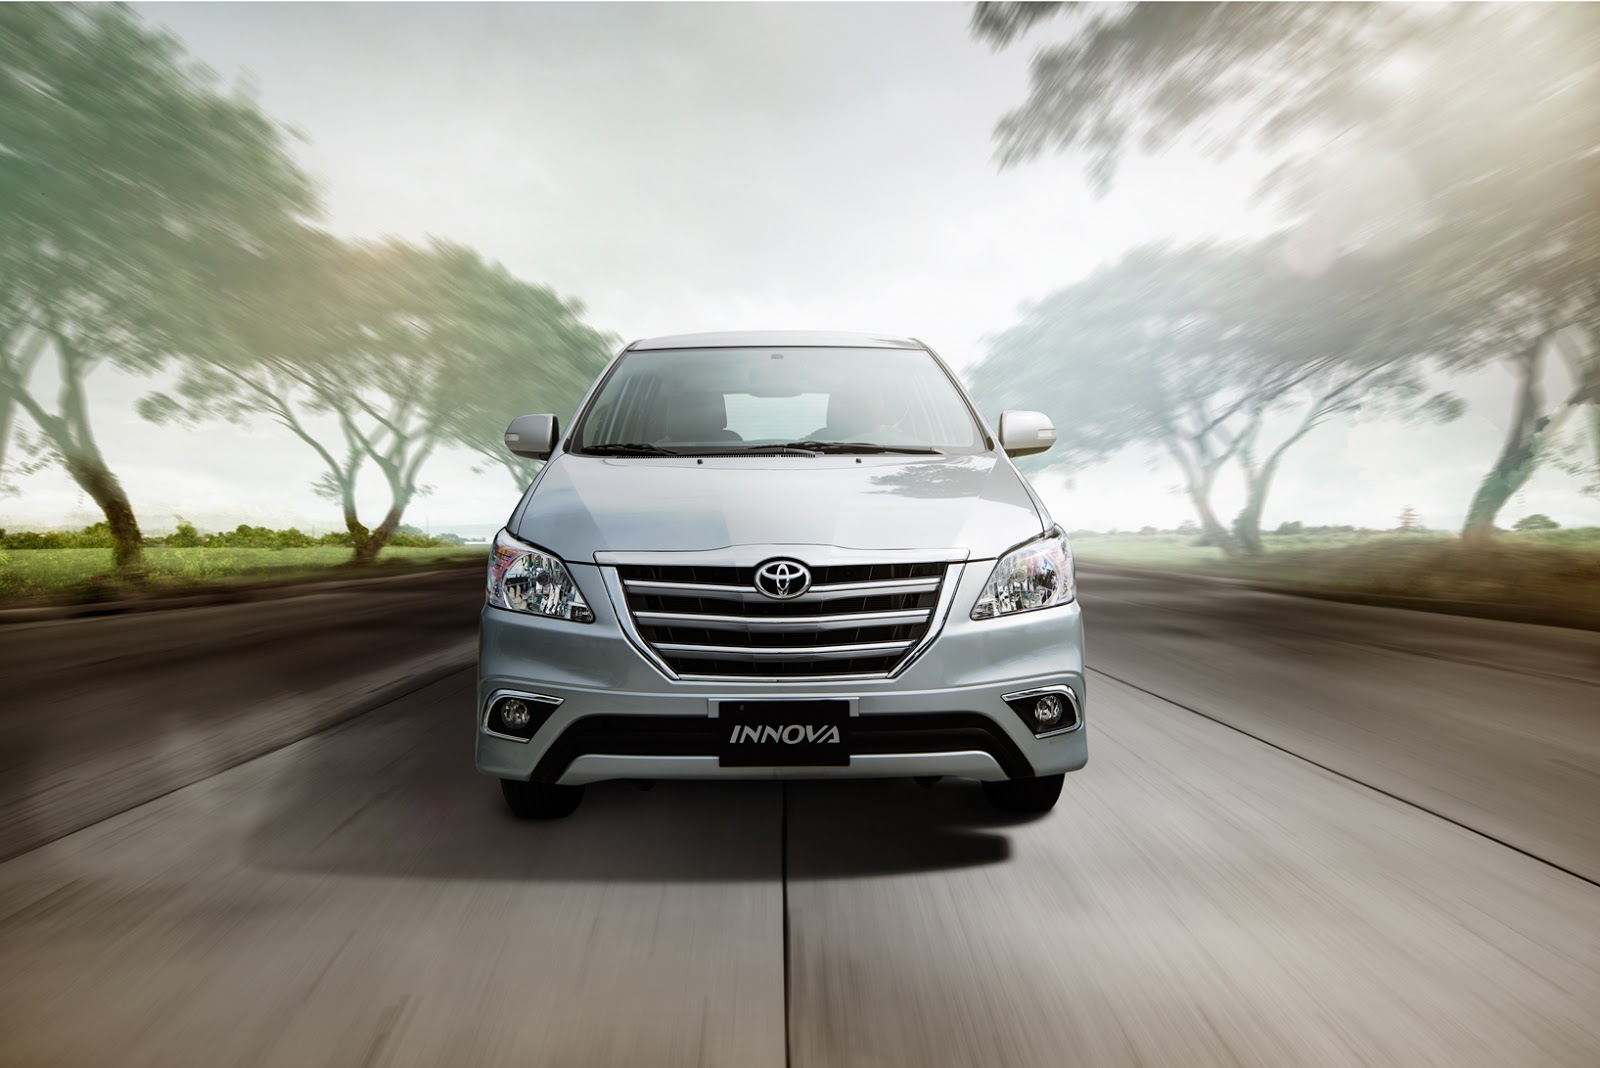 used car review toyota innova 2005 2016 types cars. Black Bedroom Furniture Sets. Home Design Ideas